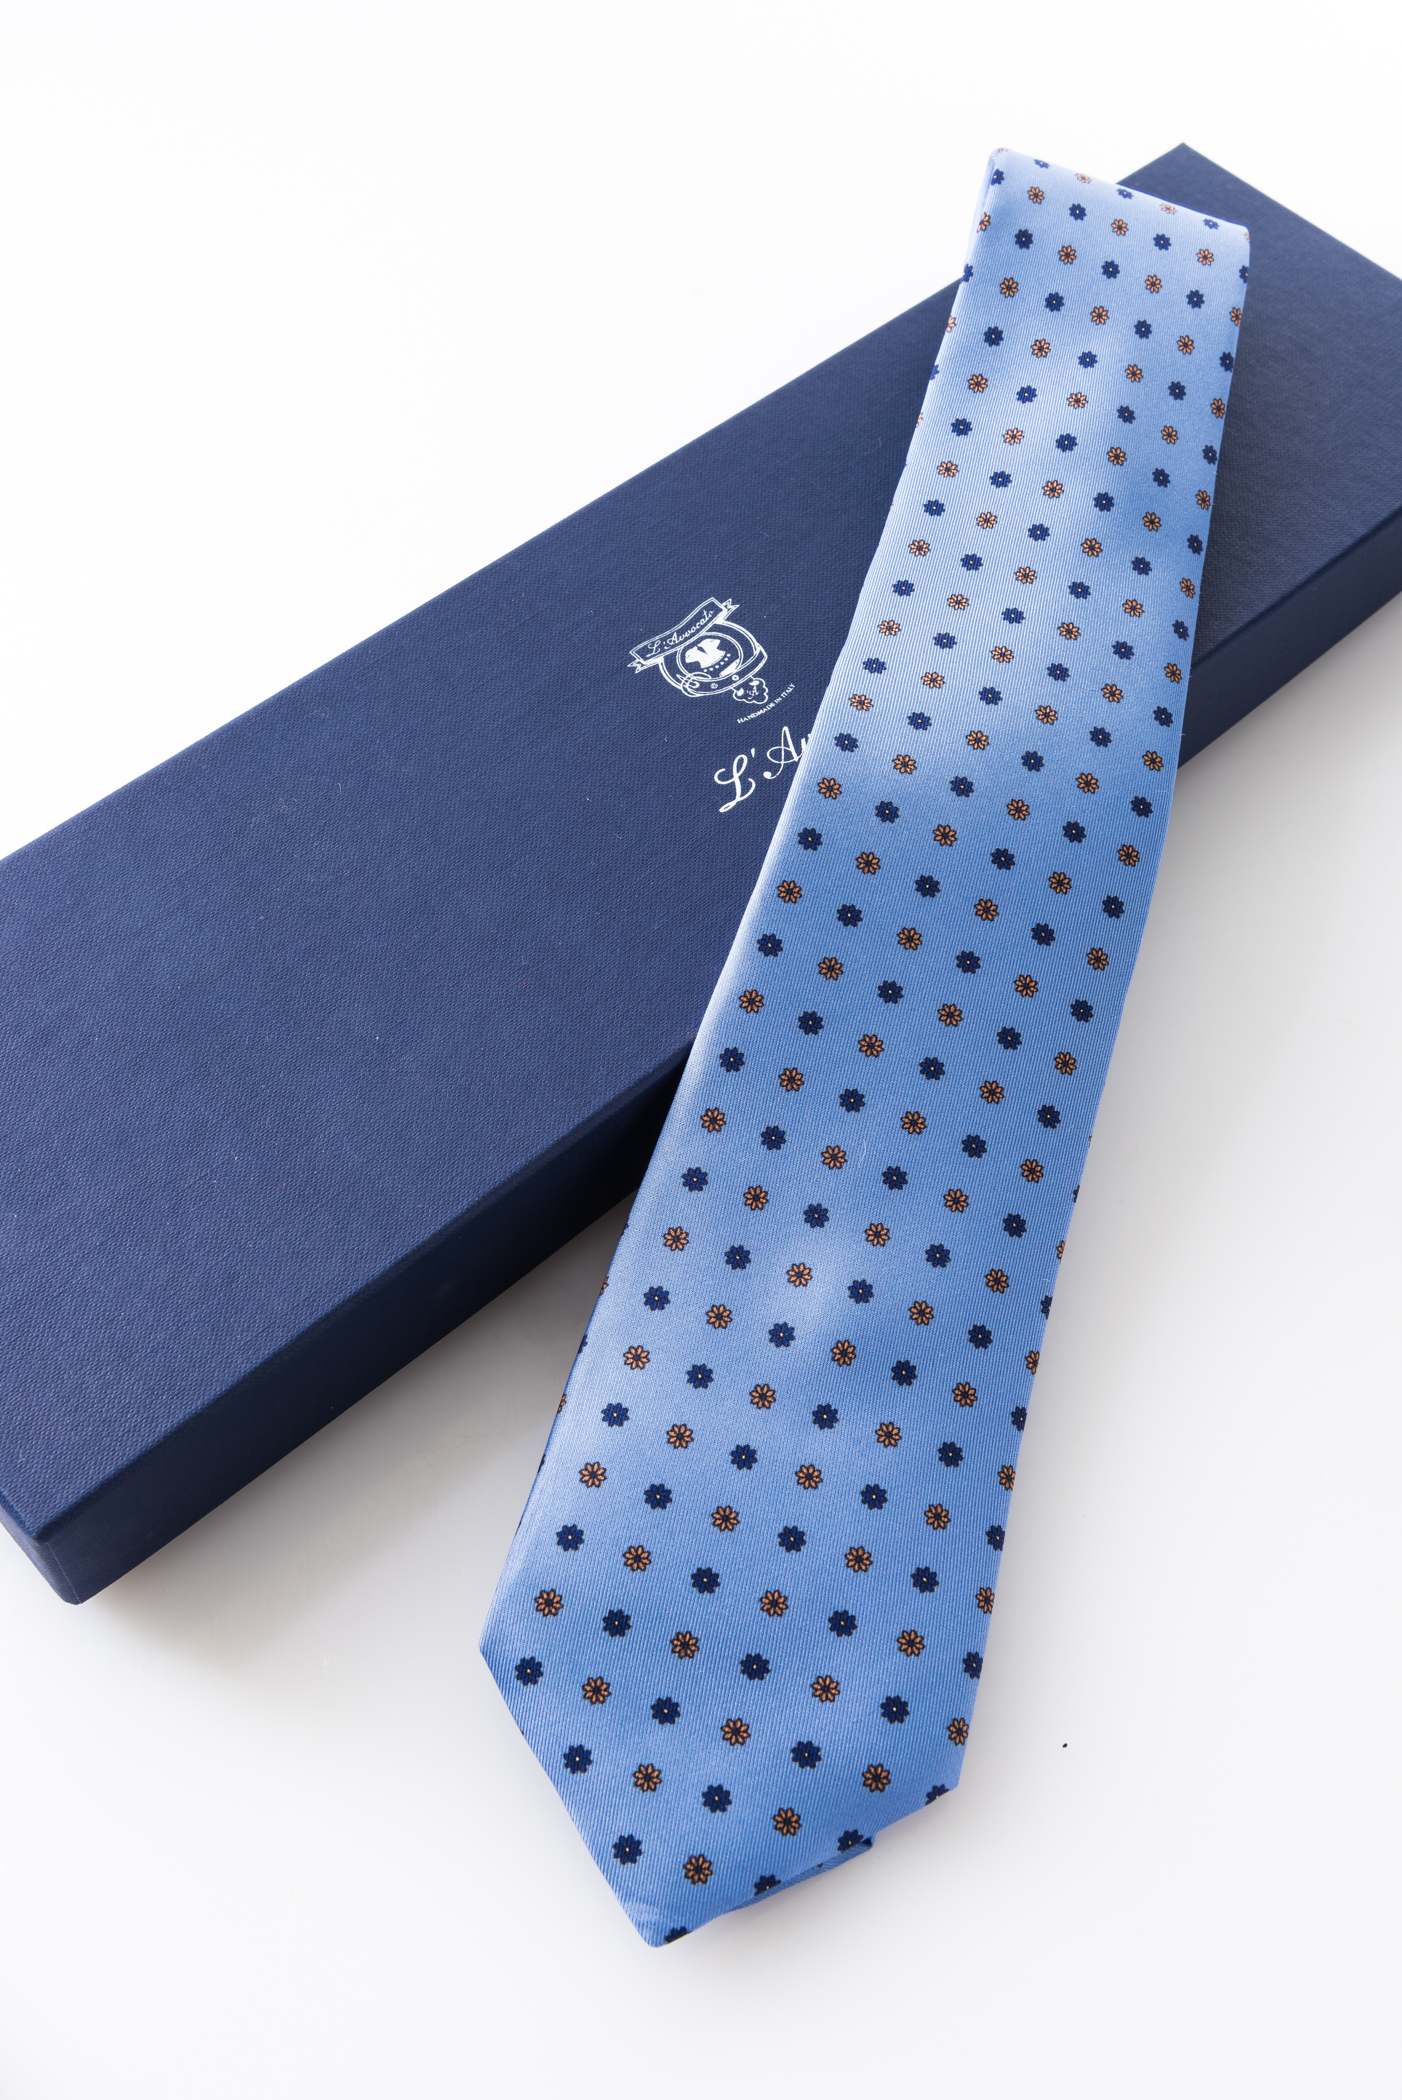 Seven-fold Tie – Margherita Celeste – and its packaging